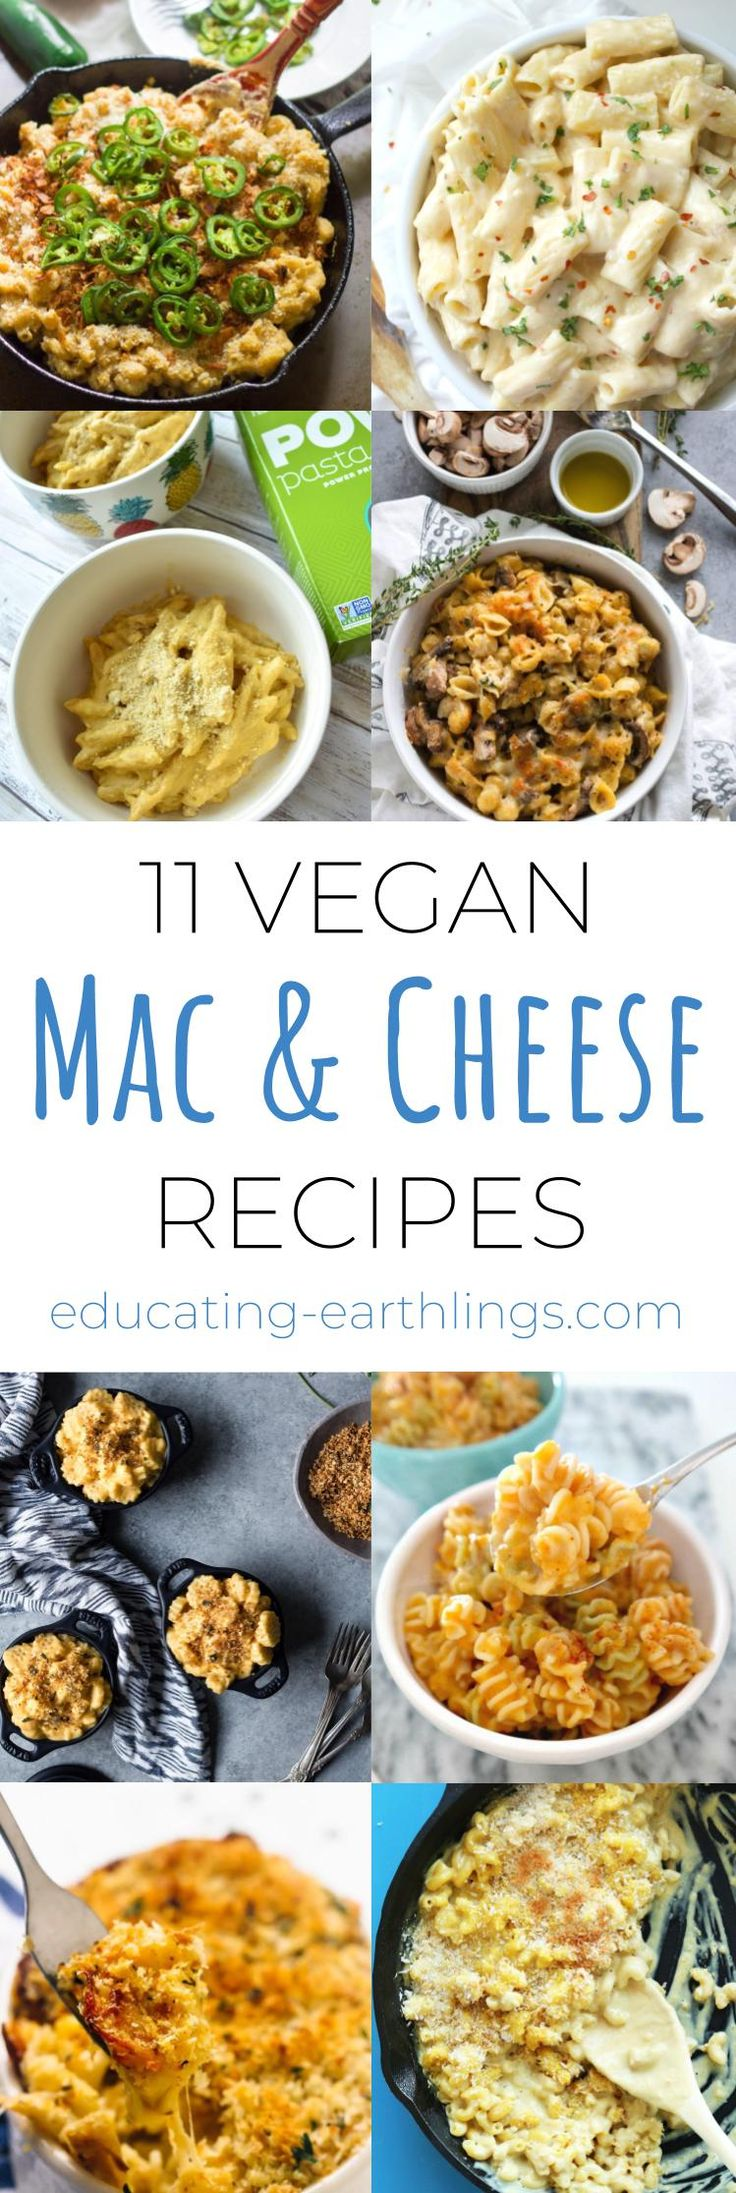 Vegan mac & Cheese recipes